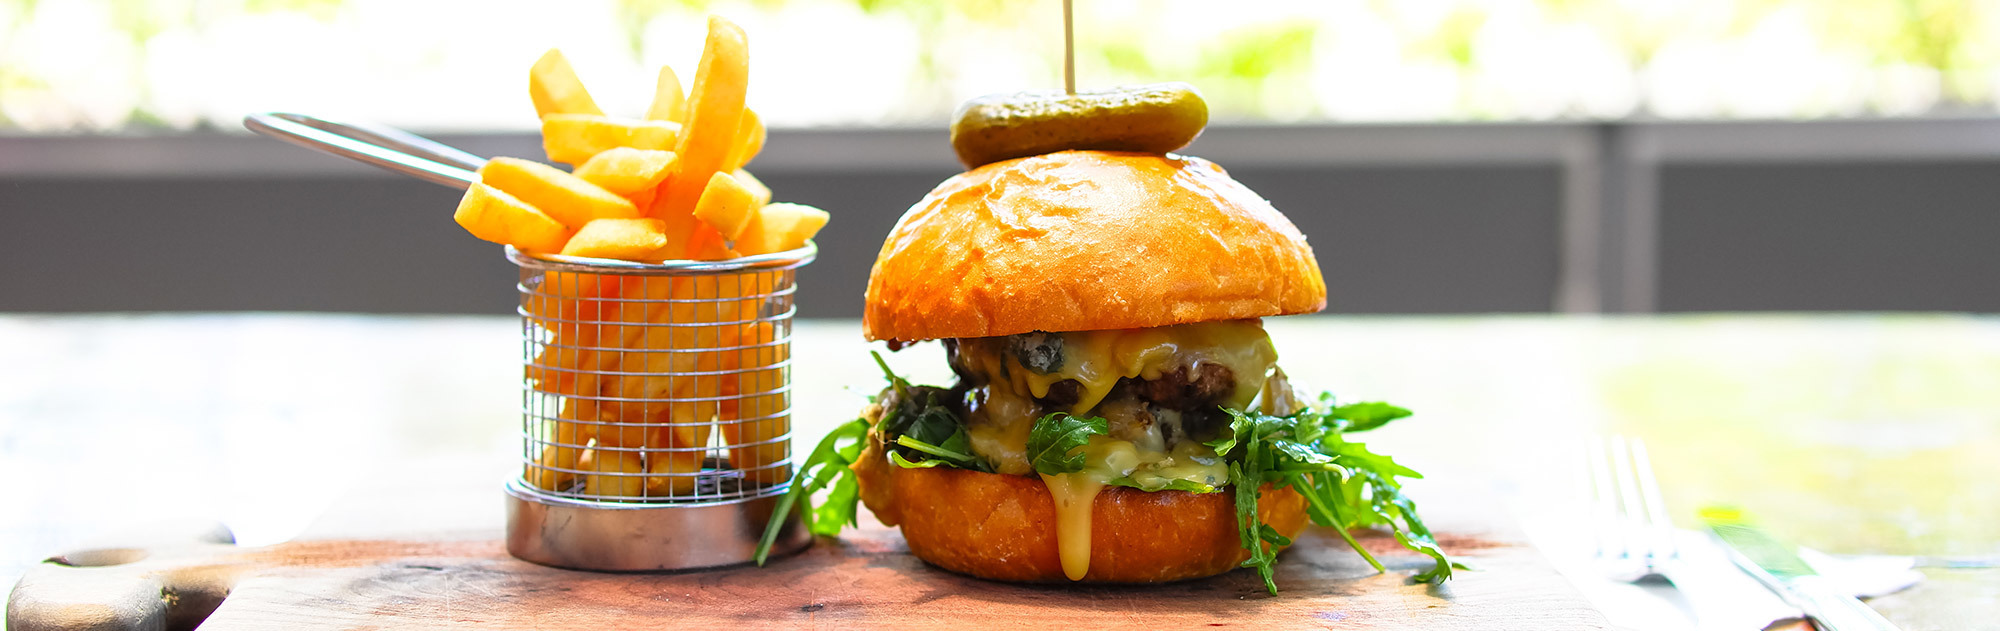 Burger And Drink 20